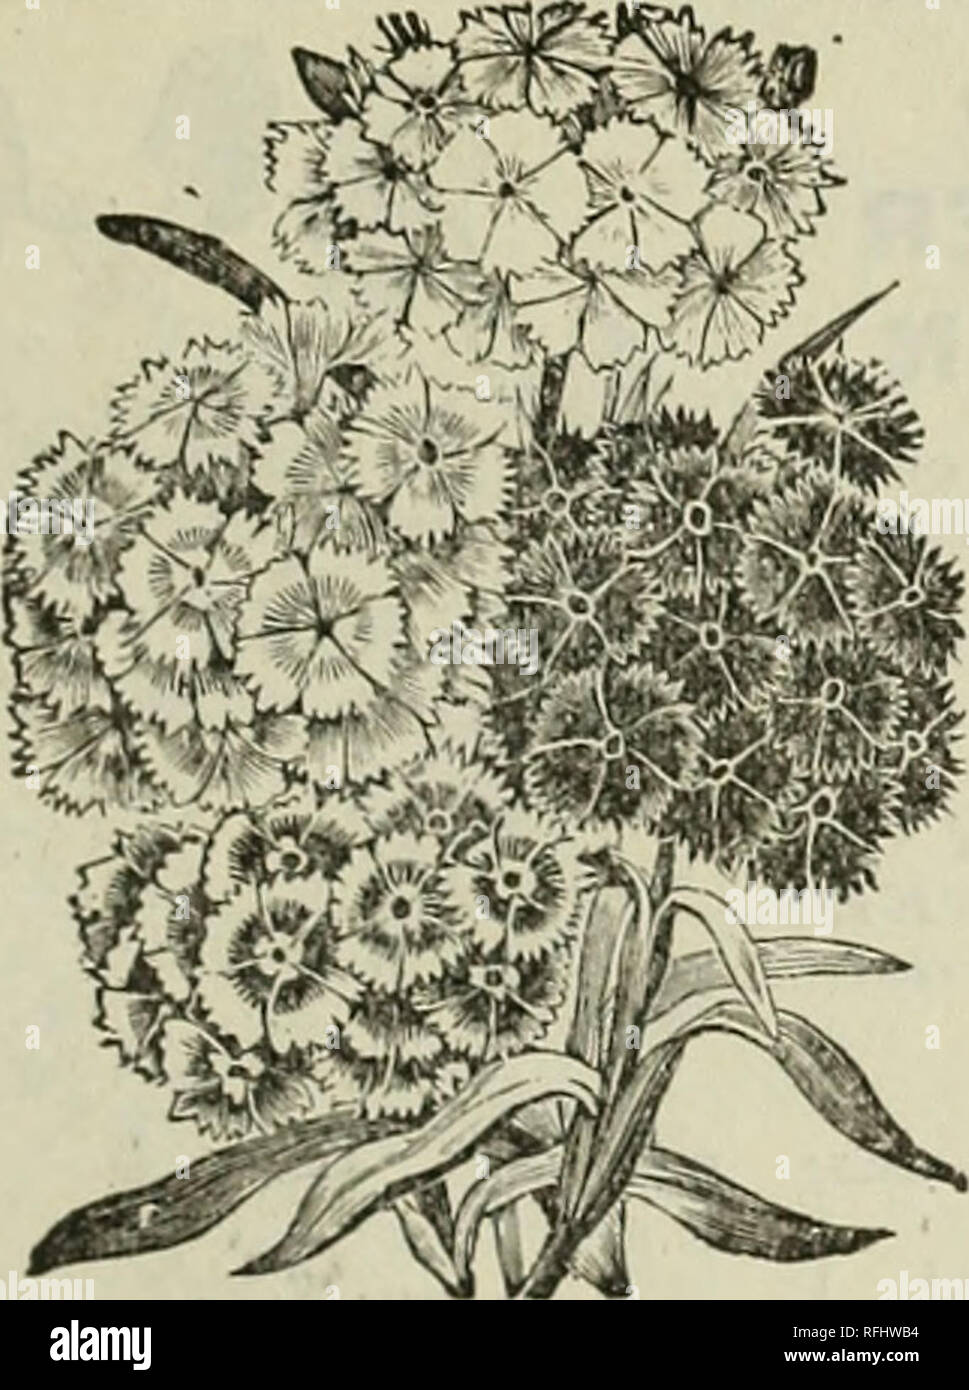 . Flowers 1900 : Crocker's flower seeds. Nursery stock Kansas Catalogs; Flowers Seeds Catalogs. FLOWER SEED SPECIALISTS, Minneapolis, Minn. 31. SWEET WILLIAM-Dianthus Barbatus. SWEET WILLEAM. Dianthus Barbatus. An old garden favorite. It has been for years an unfailing favorite and cannot be surpassed in the grand display it makes throughout the latter part of summer and autumn. The plants bloom for several successive years, but better results can be obtained by sowing the seeds in the open ground early each spring, as it has been found that young plants are much better bloomers and in all way - Stock Image